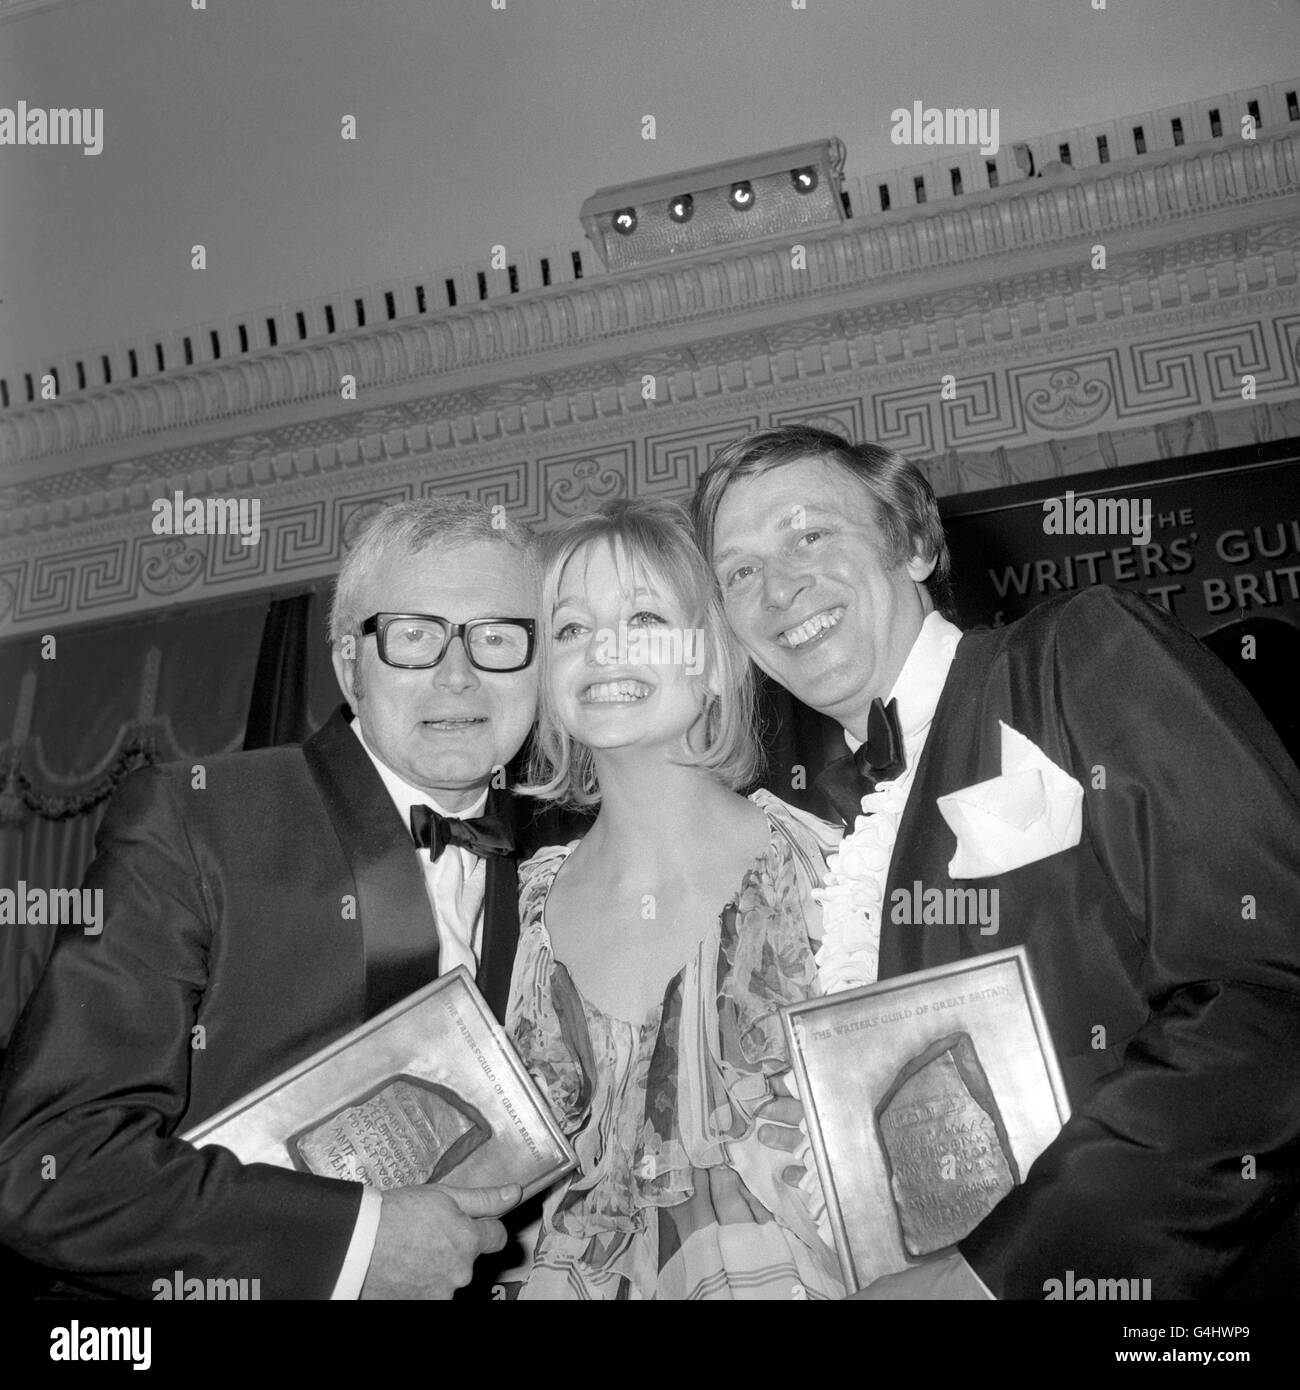 Television - Writers' Guild of Great Britain Awards Dinner - Dorchester Hotel, London - Stock Image